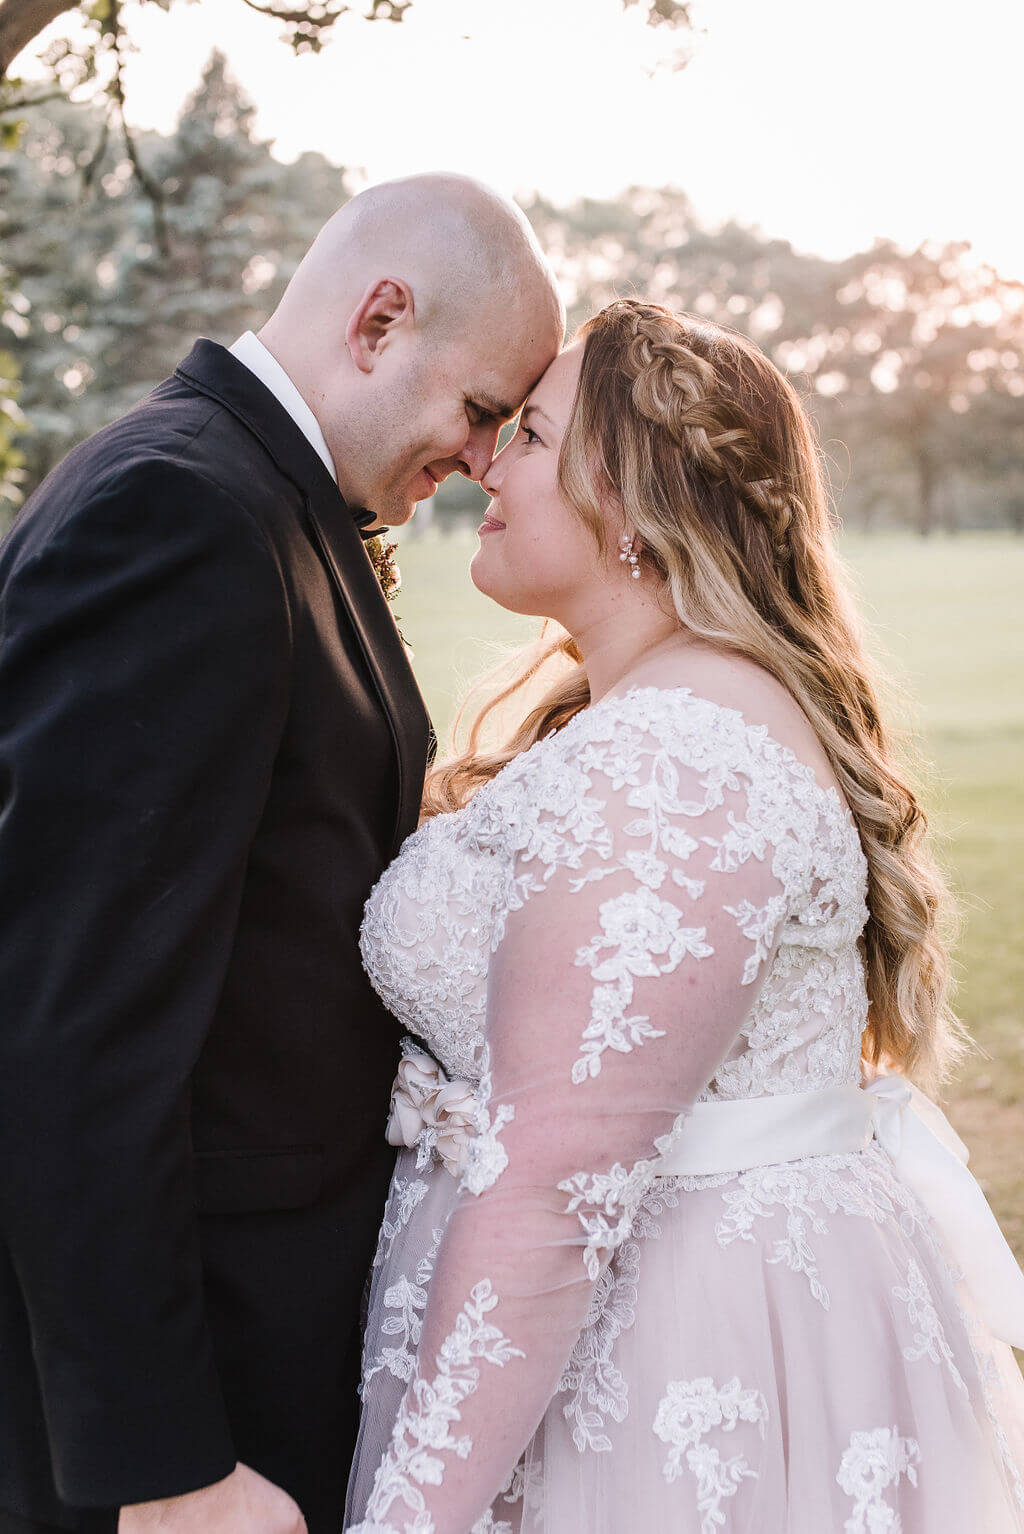 Laura Haya Photography | Sixpence Events Day of Coordinating | Bunker Hills Event Center Minnesota | forehead touch sunset photo on the golf course